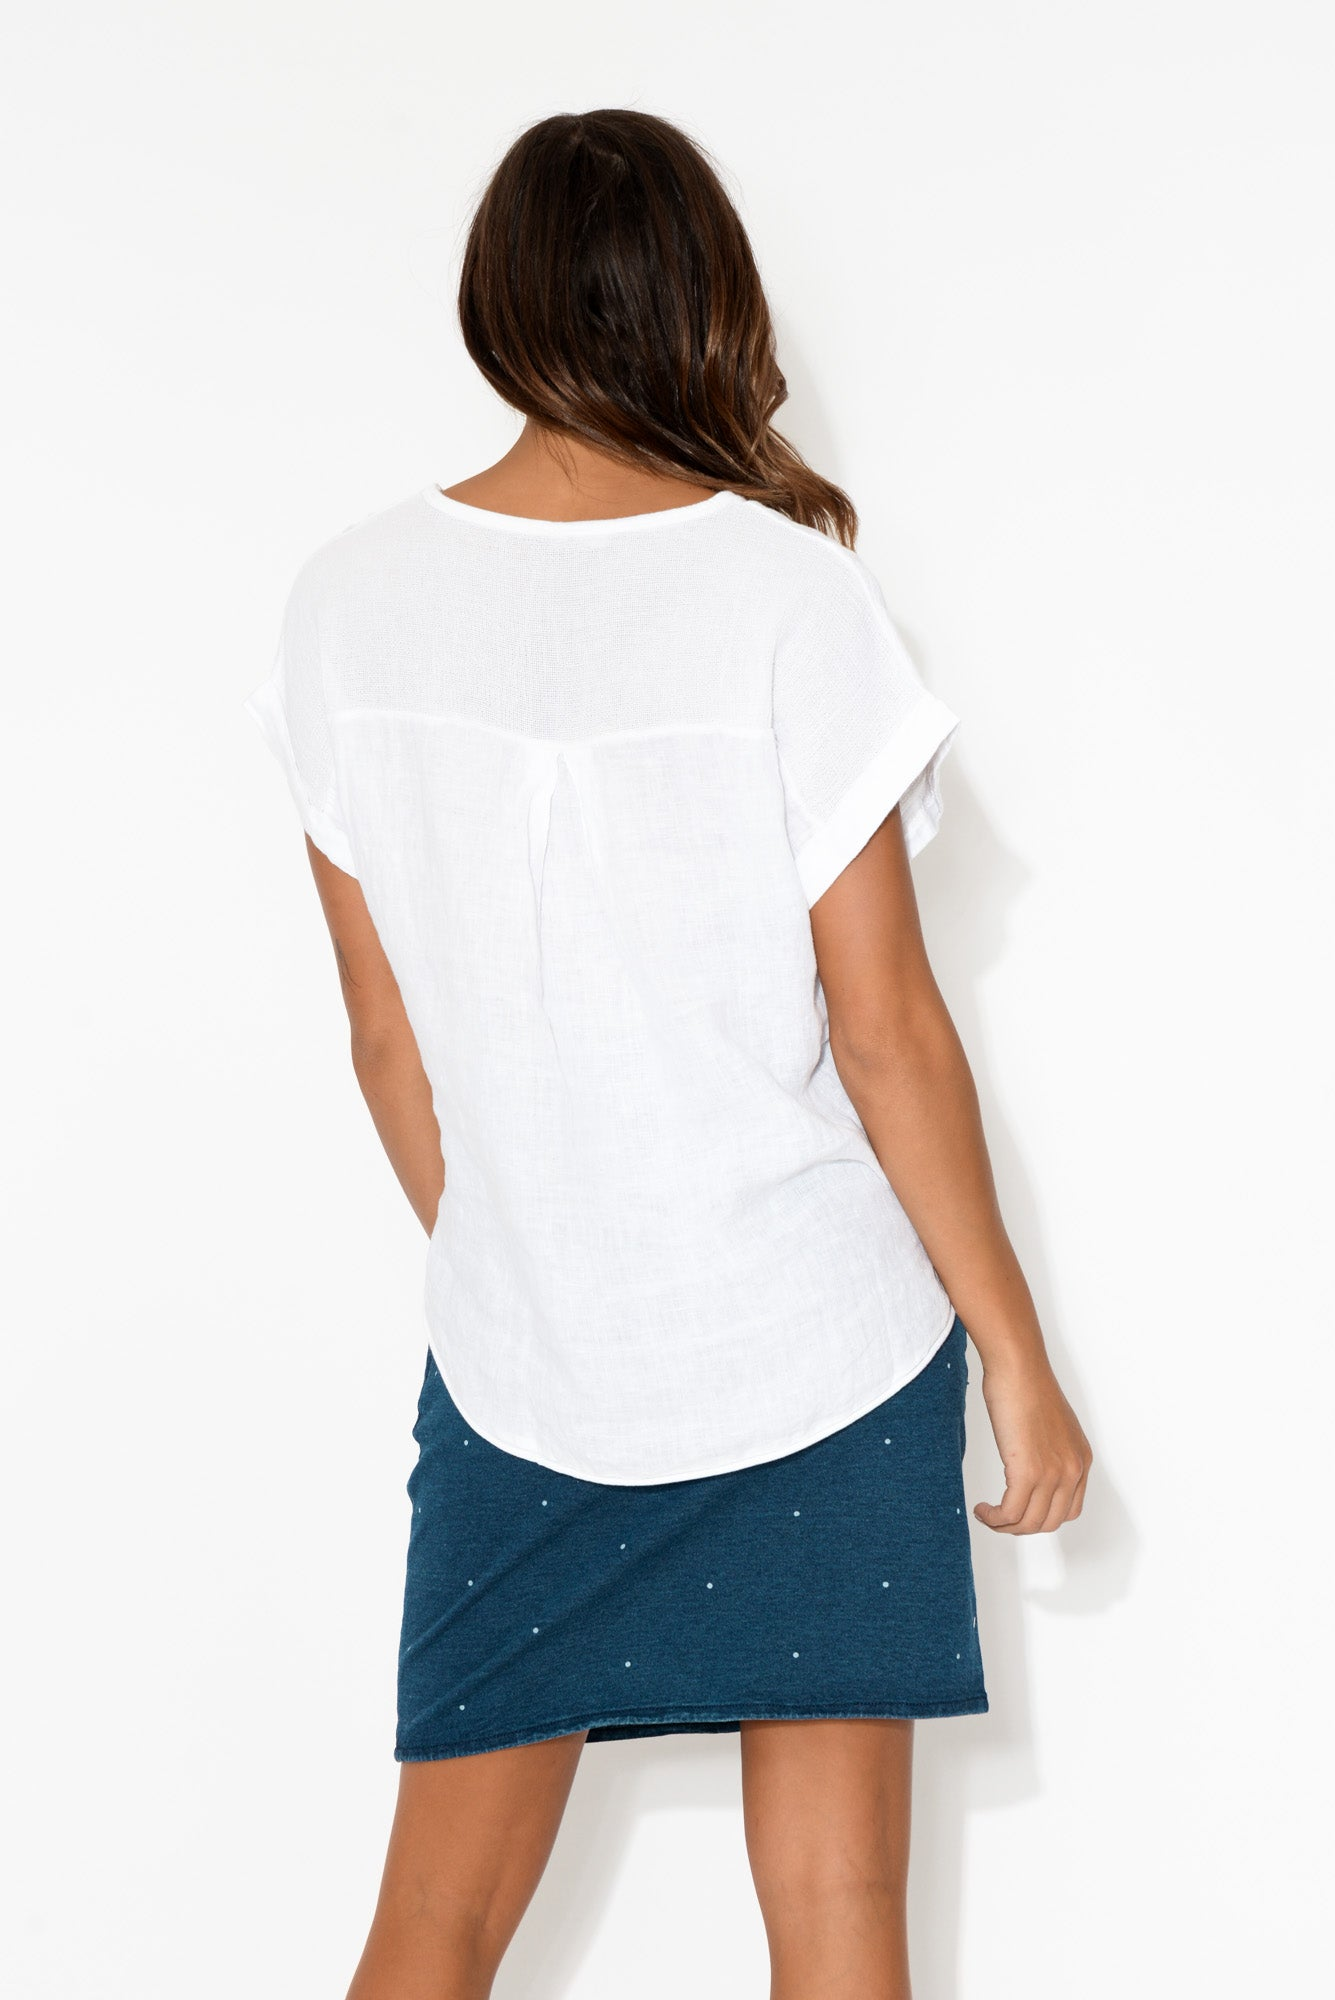 Dorian White Linen Cotton Top